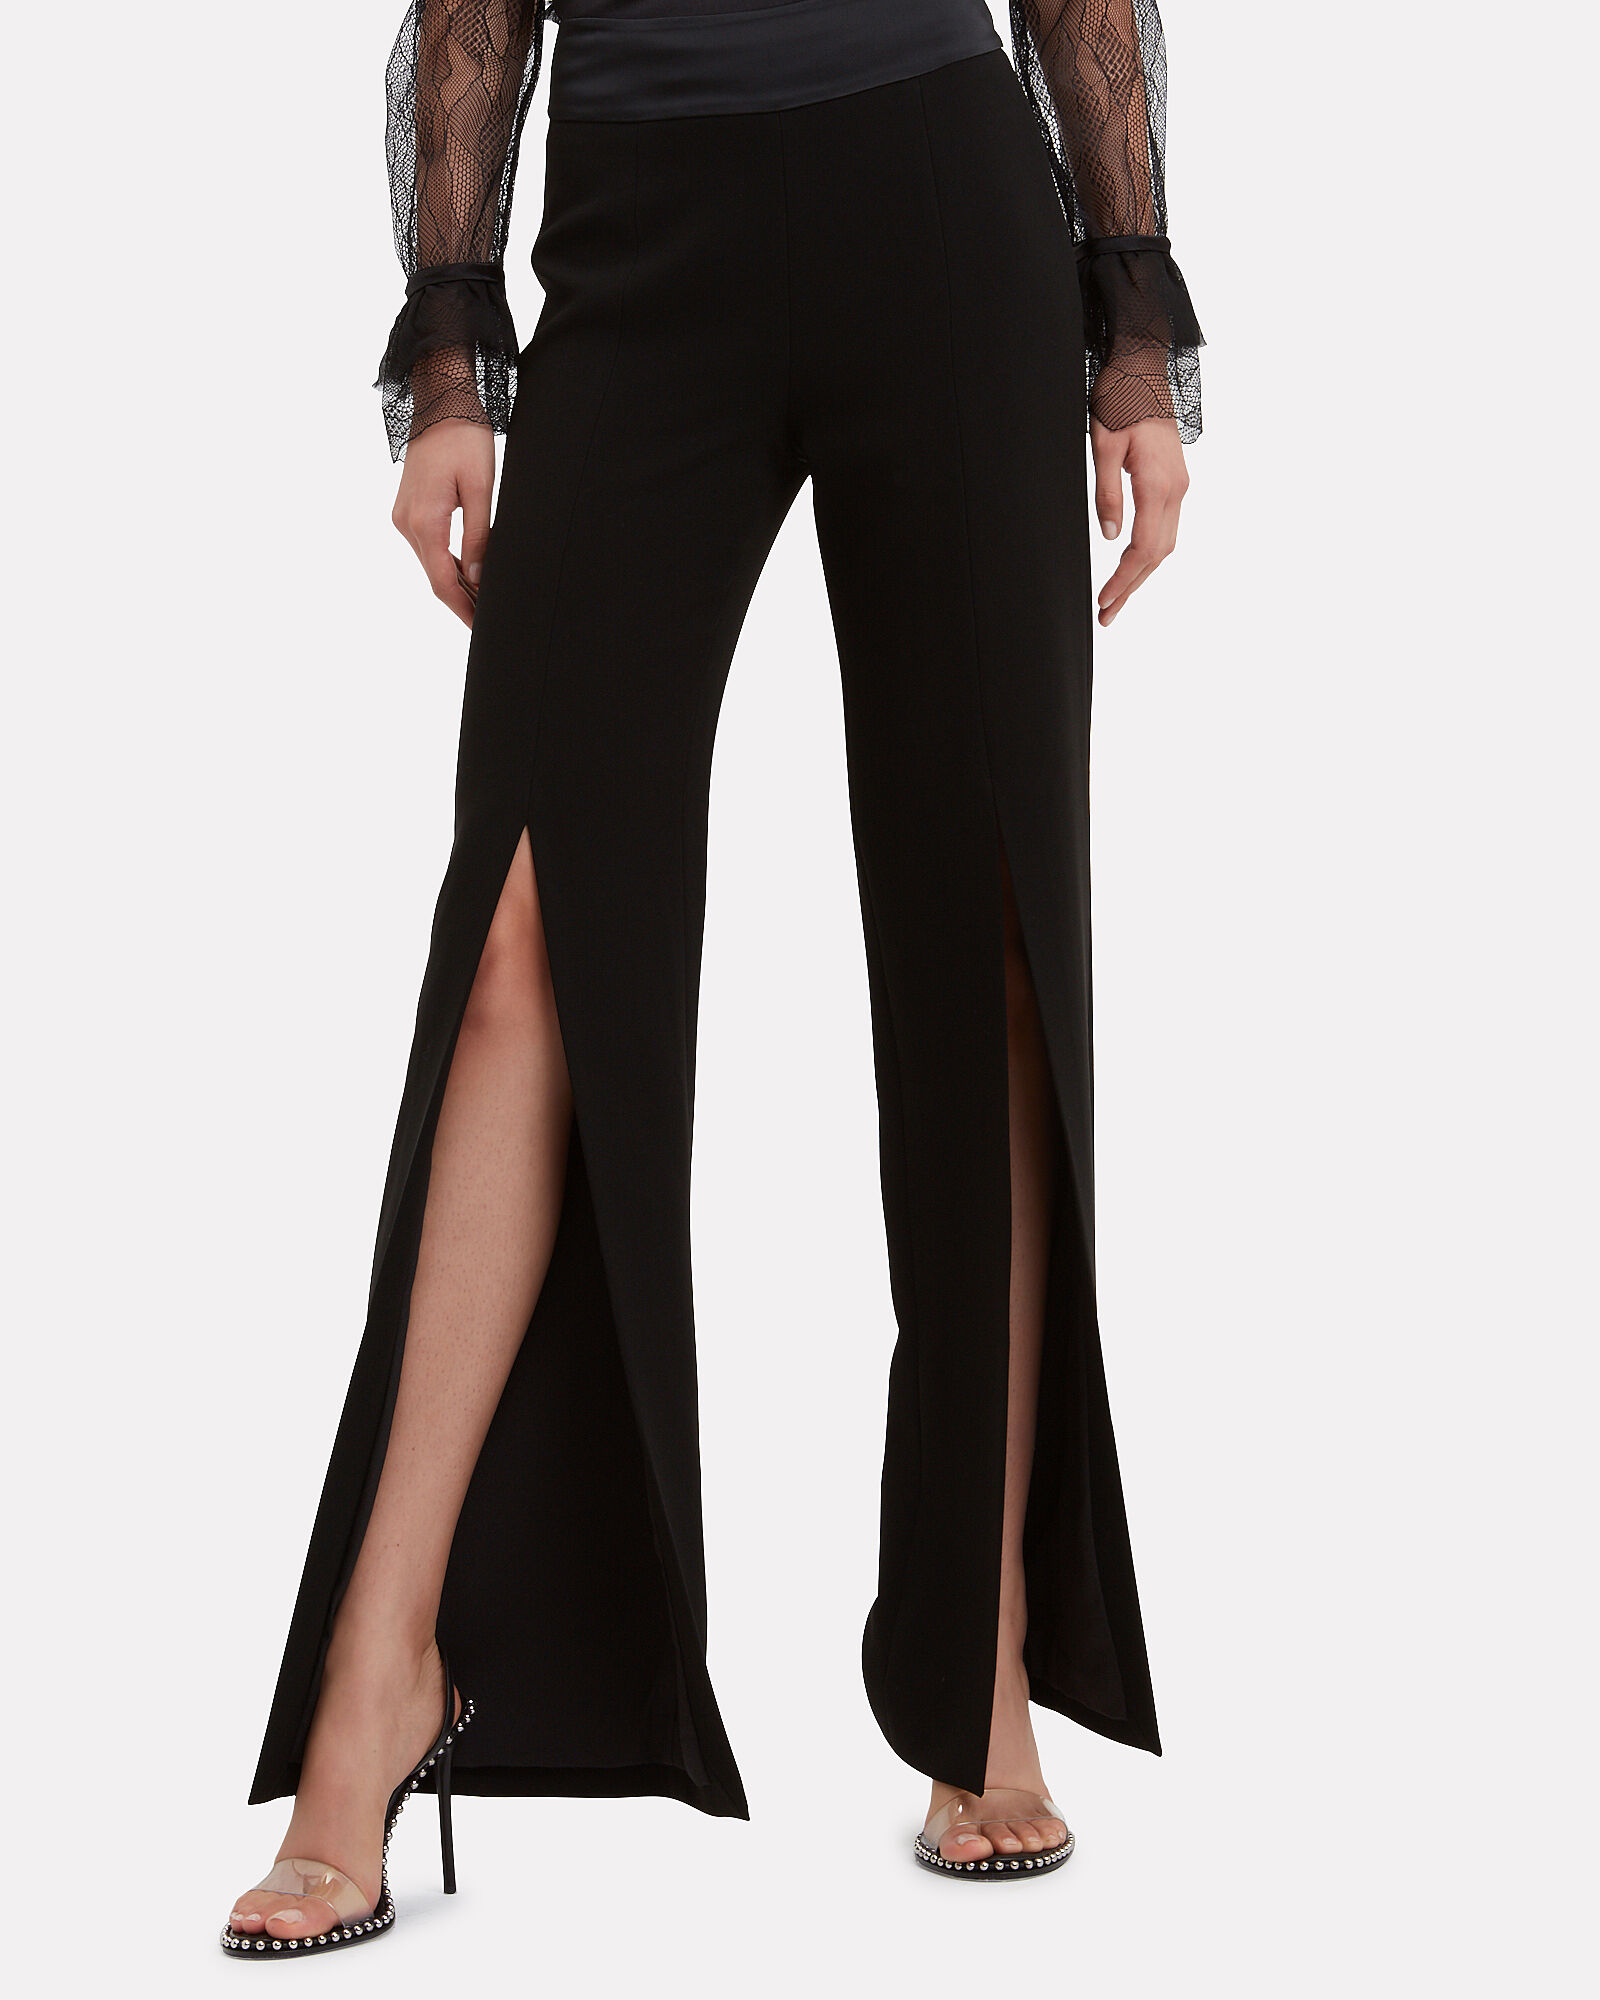 Black Slit Pants, BLACK, hi-res